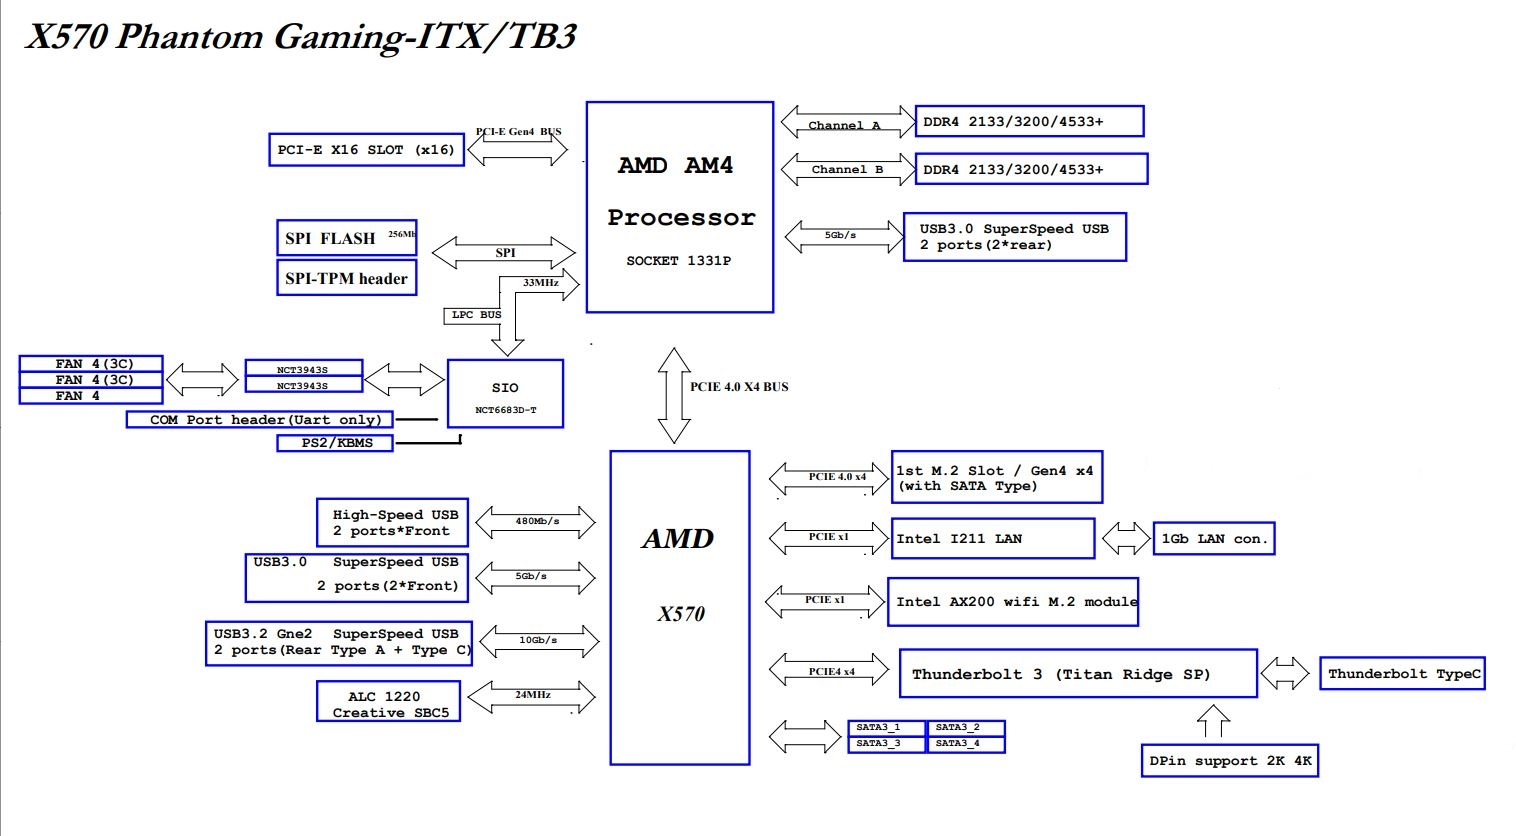 asrock-20x570-20phantom-20gaming-20itx-20tb3-20block-20diagram-jpg.jpg